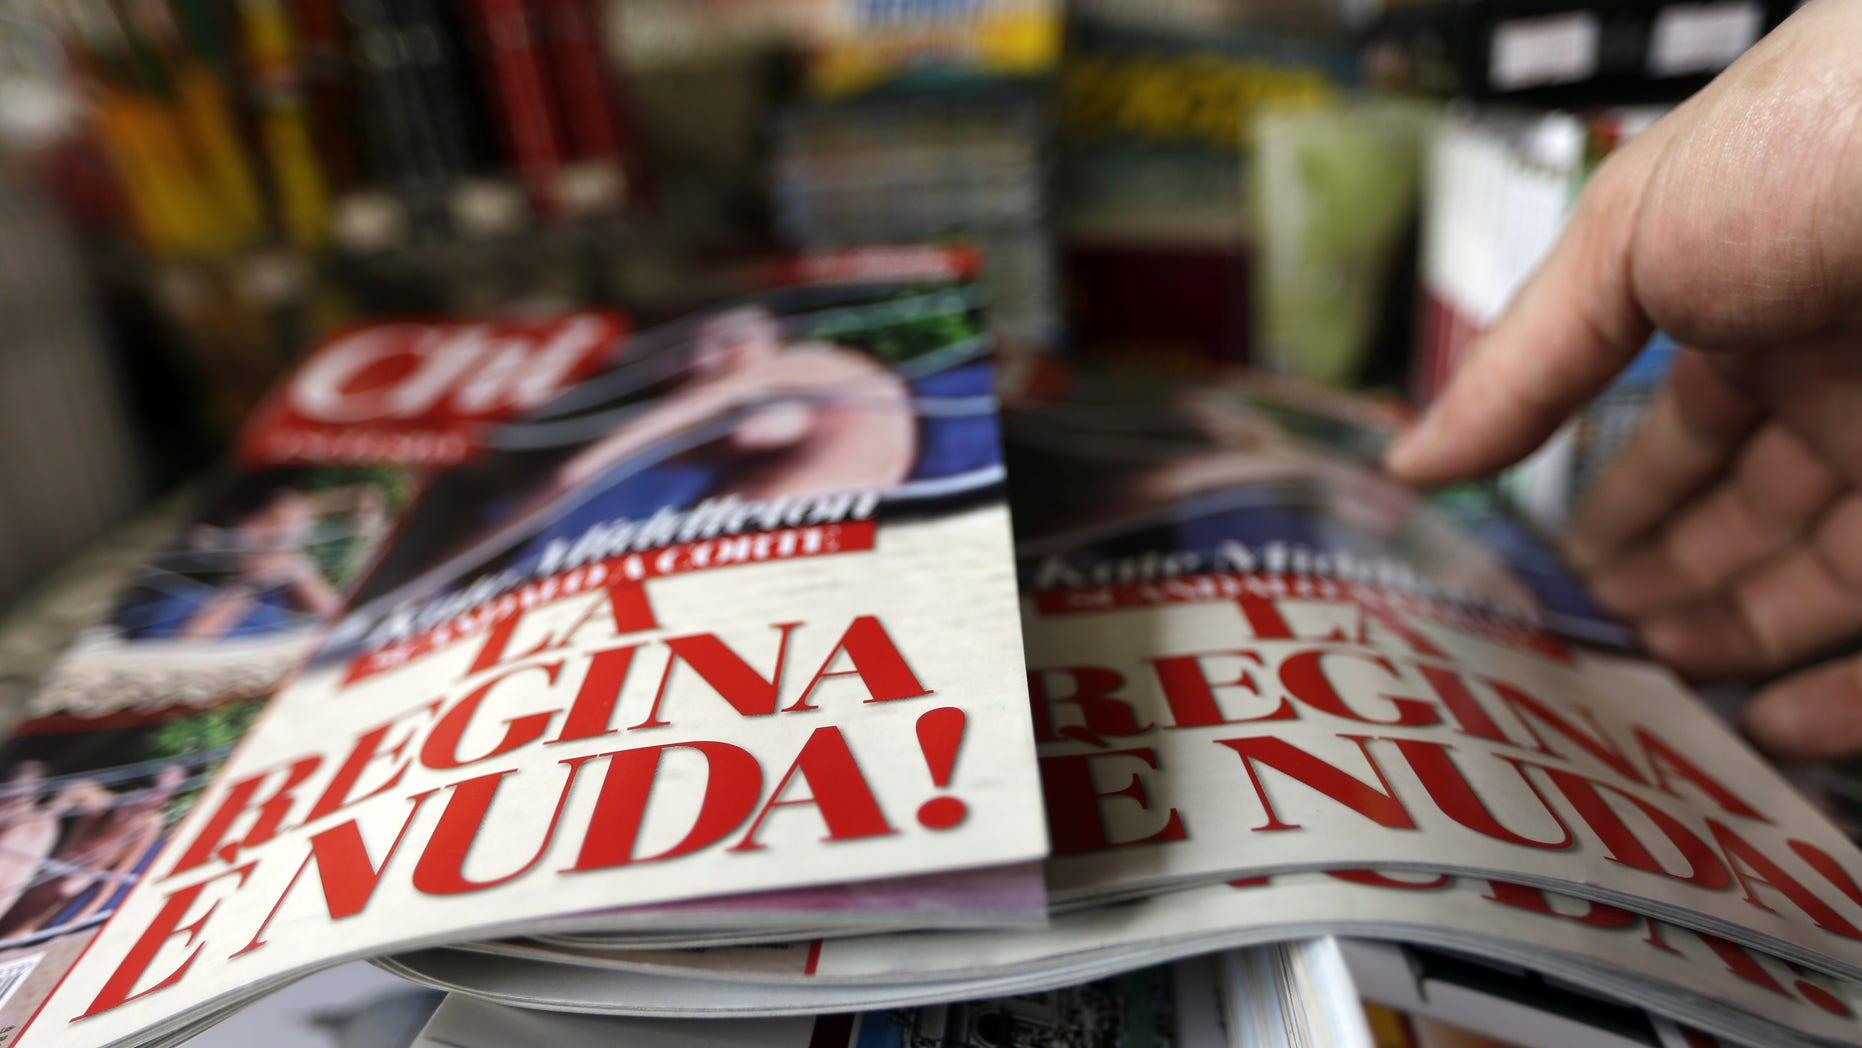 """A newstands owner adjusts copies of the Italian magazine Chi reading in Italian """"The queen is naked"""" in Rome, Monday, Sept. 17, 2012. An Italian gossip magazine owned by former Premier Silvio Berlusconi published a 26-page spread of topless photos of Britain's Prince William's wife Kate on Monday despite legal action in France against the French magazine that published them first. Chi hit newsstands on Monday, featuring a montage of photos taken while the Duke and Duchess of Cambridge were on vacation at a relative's home in the south of France last month. They included the 14 pictures published by the popular French magazine Closer, which like Chi is owned by Berlusconi's Mondadori publishing house. (AP Photo/Alessandra Tarantino)"""